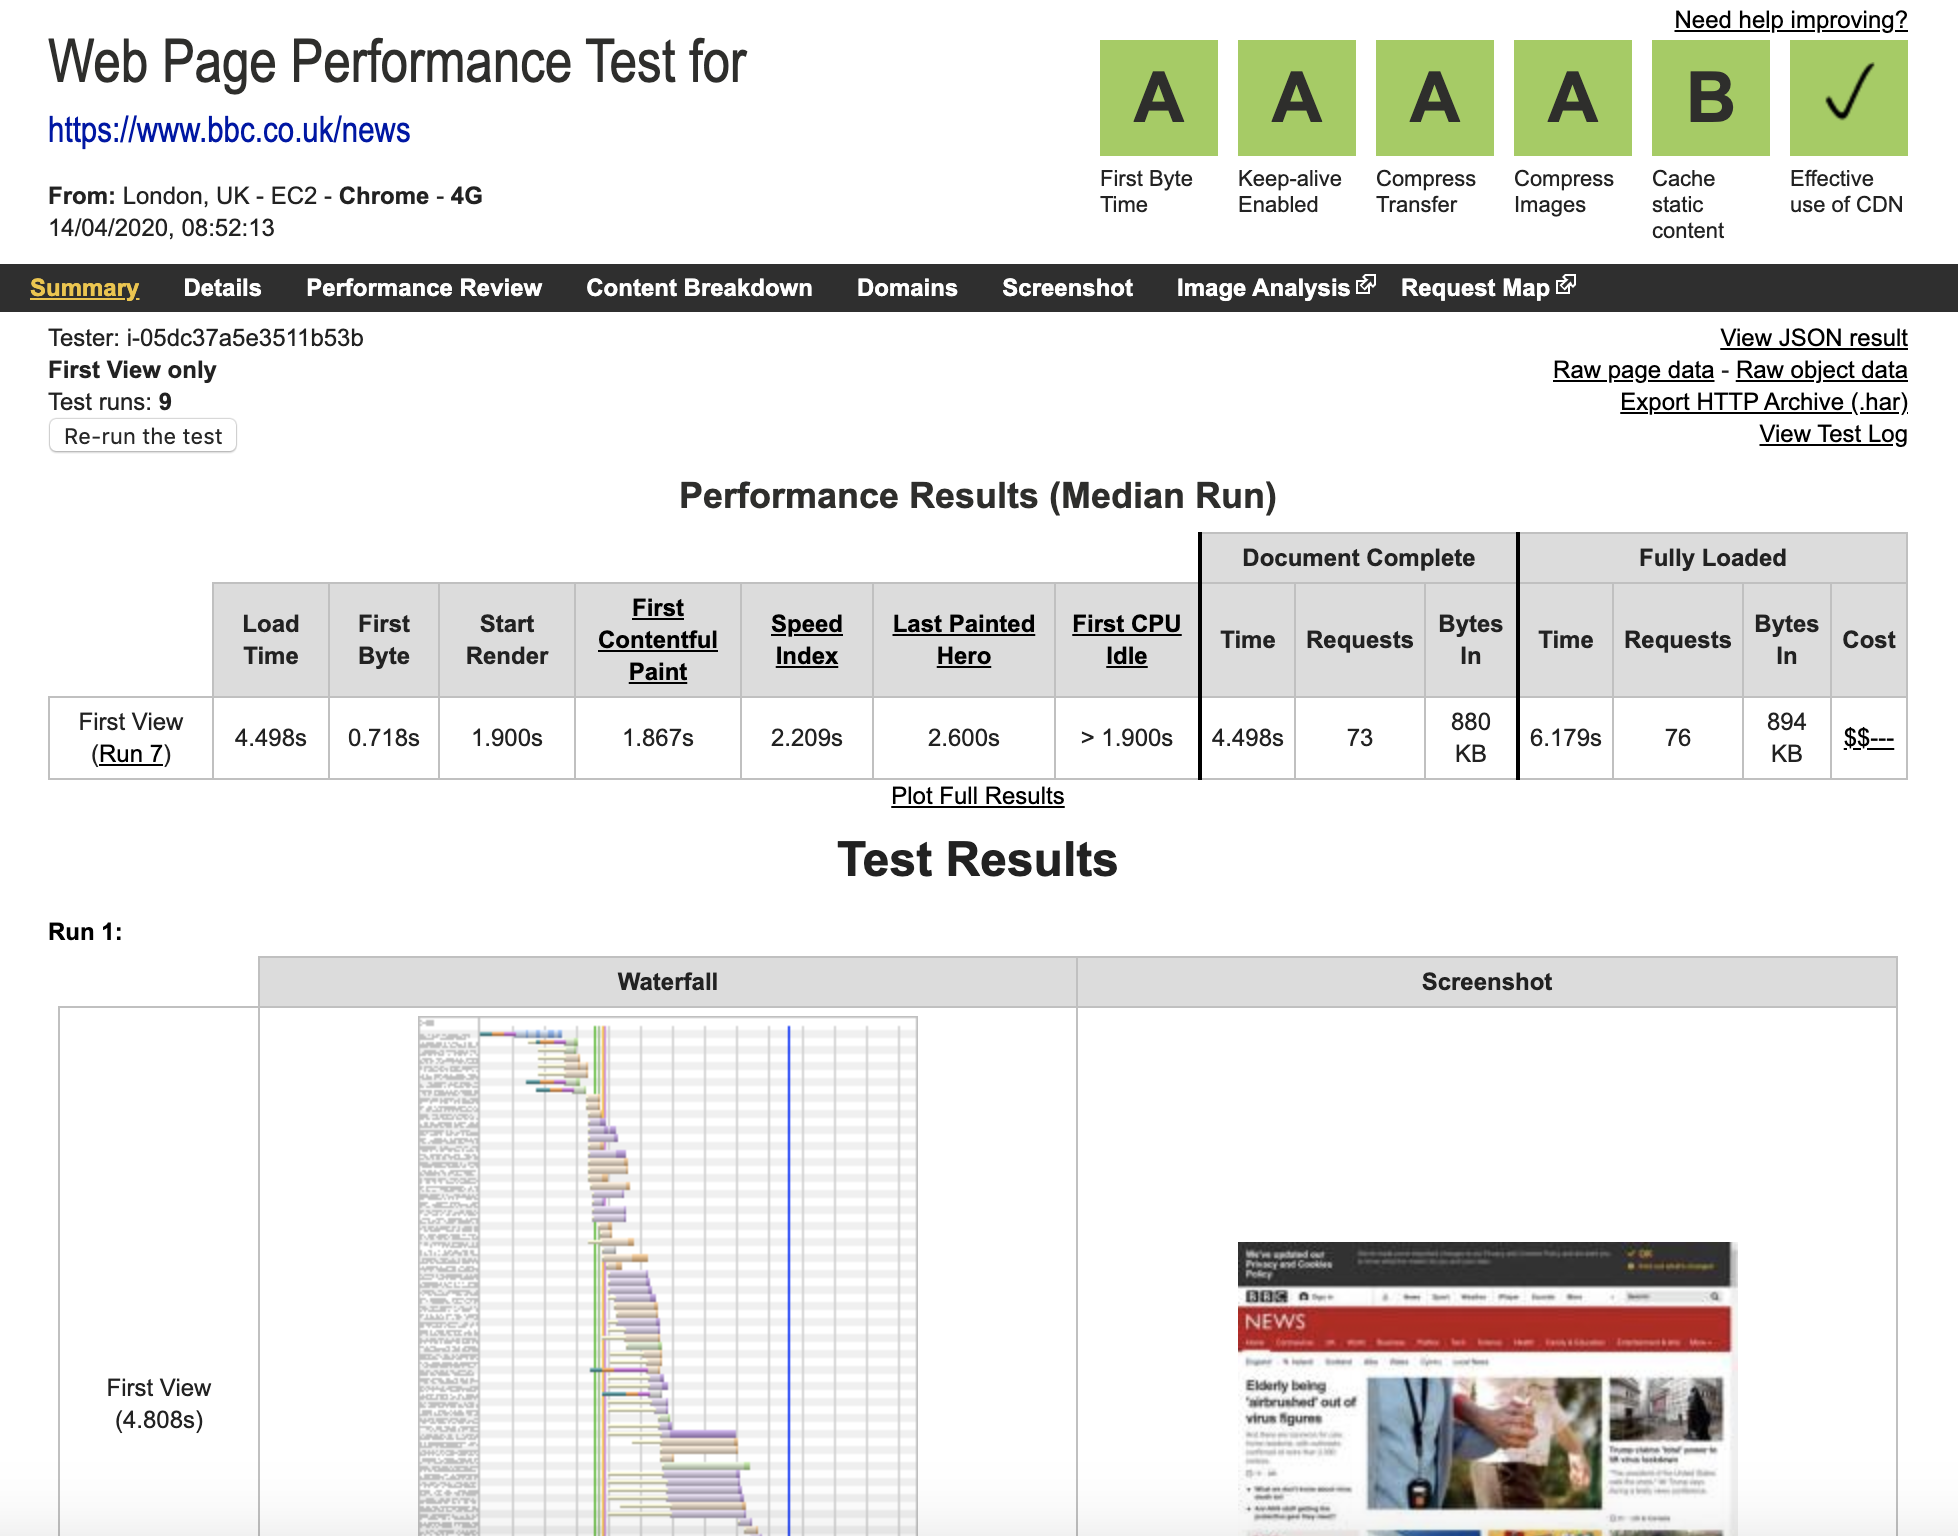 A screenshot of a webpage test result showing an overview of the page performance